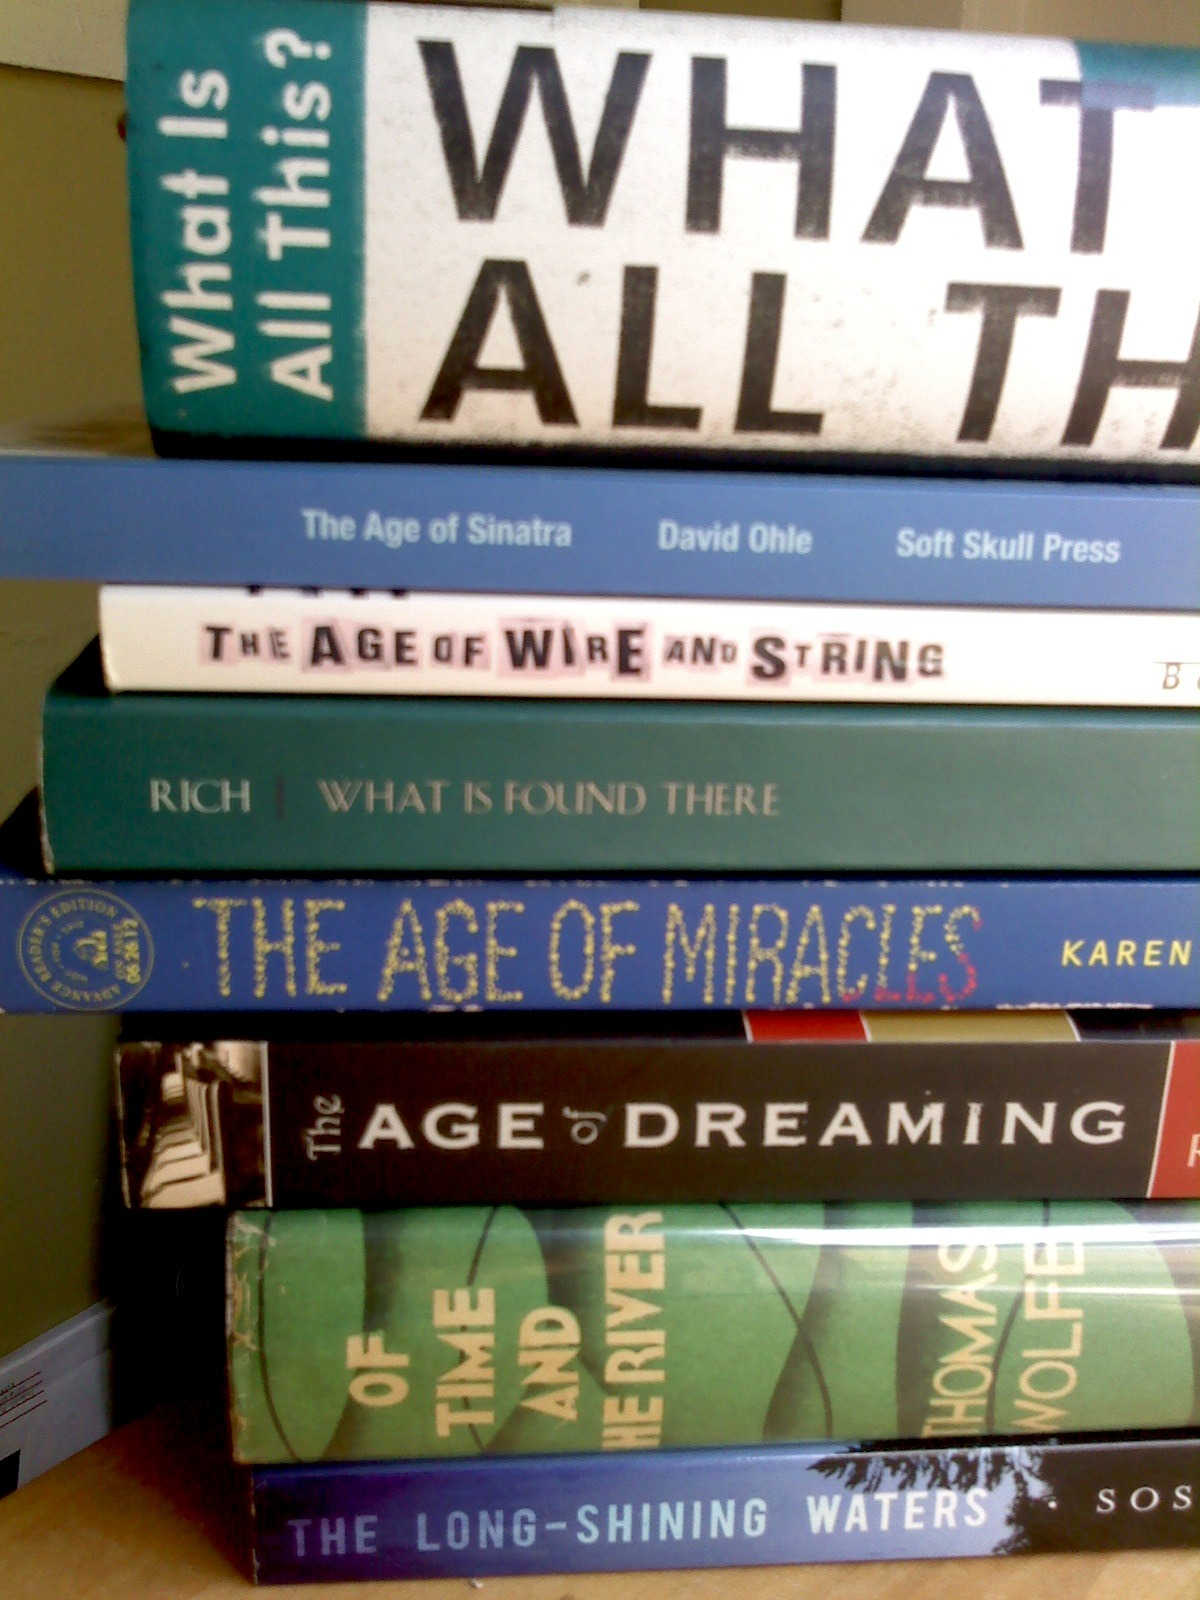 "prolixcorpuslibris:  An attempt at some book spine poetry of my own…  ""What is all this?"" What is all this? The age of Sinatra, The age of wire and string. What is found there? The age of miracles— The age of dreaming of time and the river, the long-shining waters."